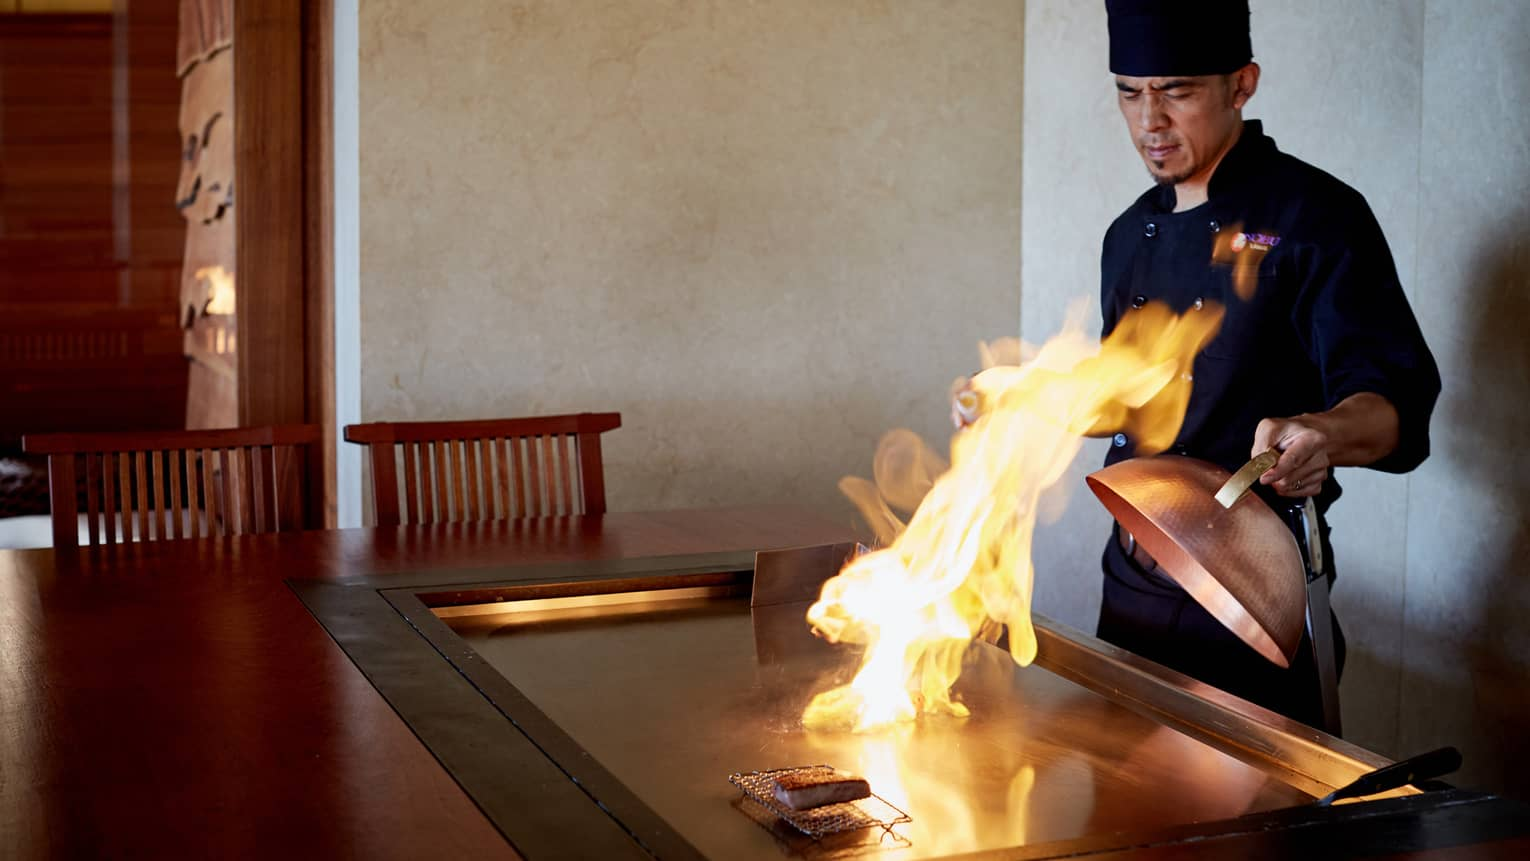 Flames shoot up from grill as NOBU restaurant chef pulls back copper lid